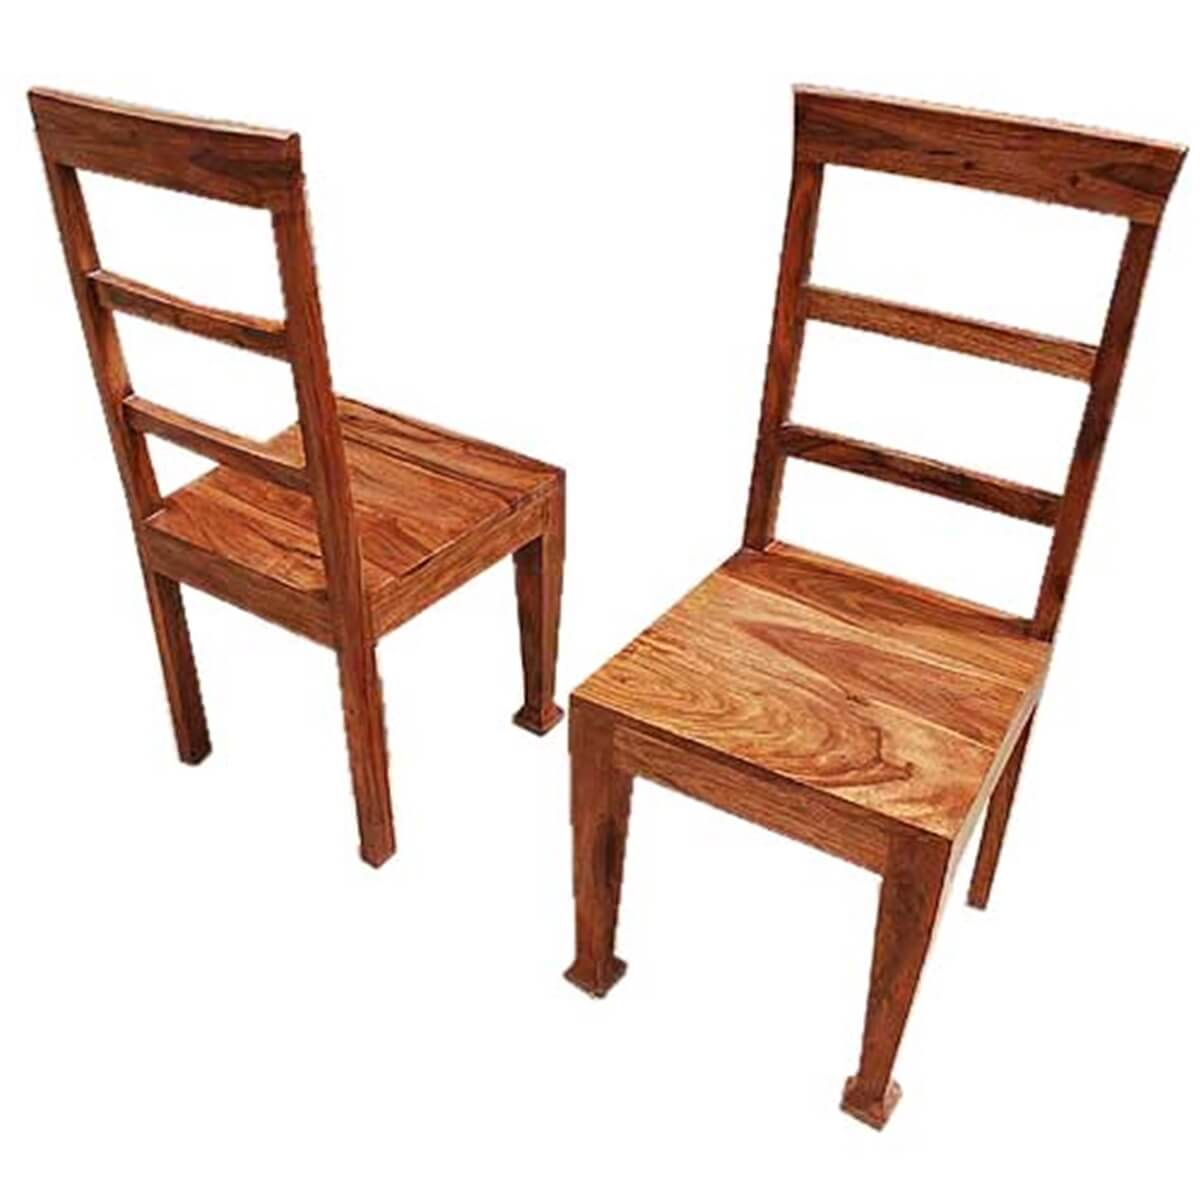 set of dining chairs personalized makeup artist chair rustic furniture solid wood table and